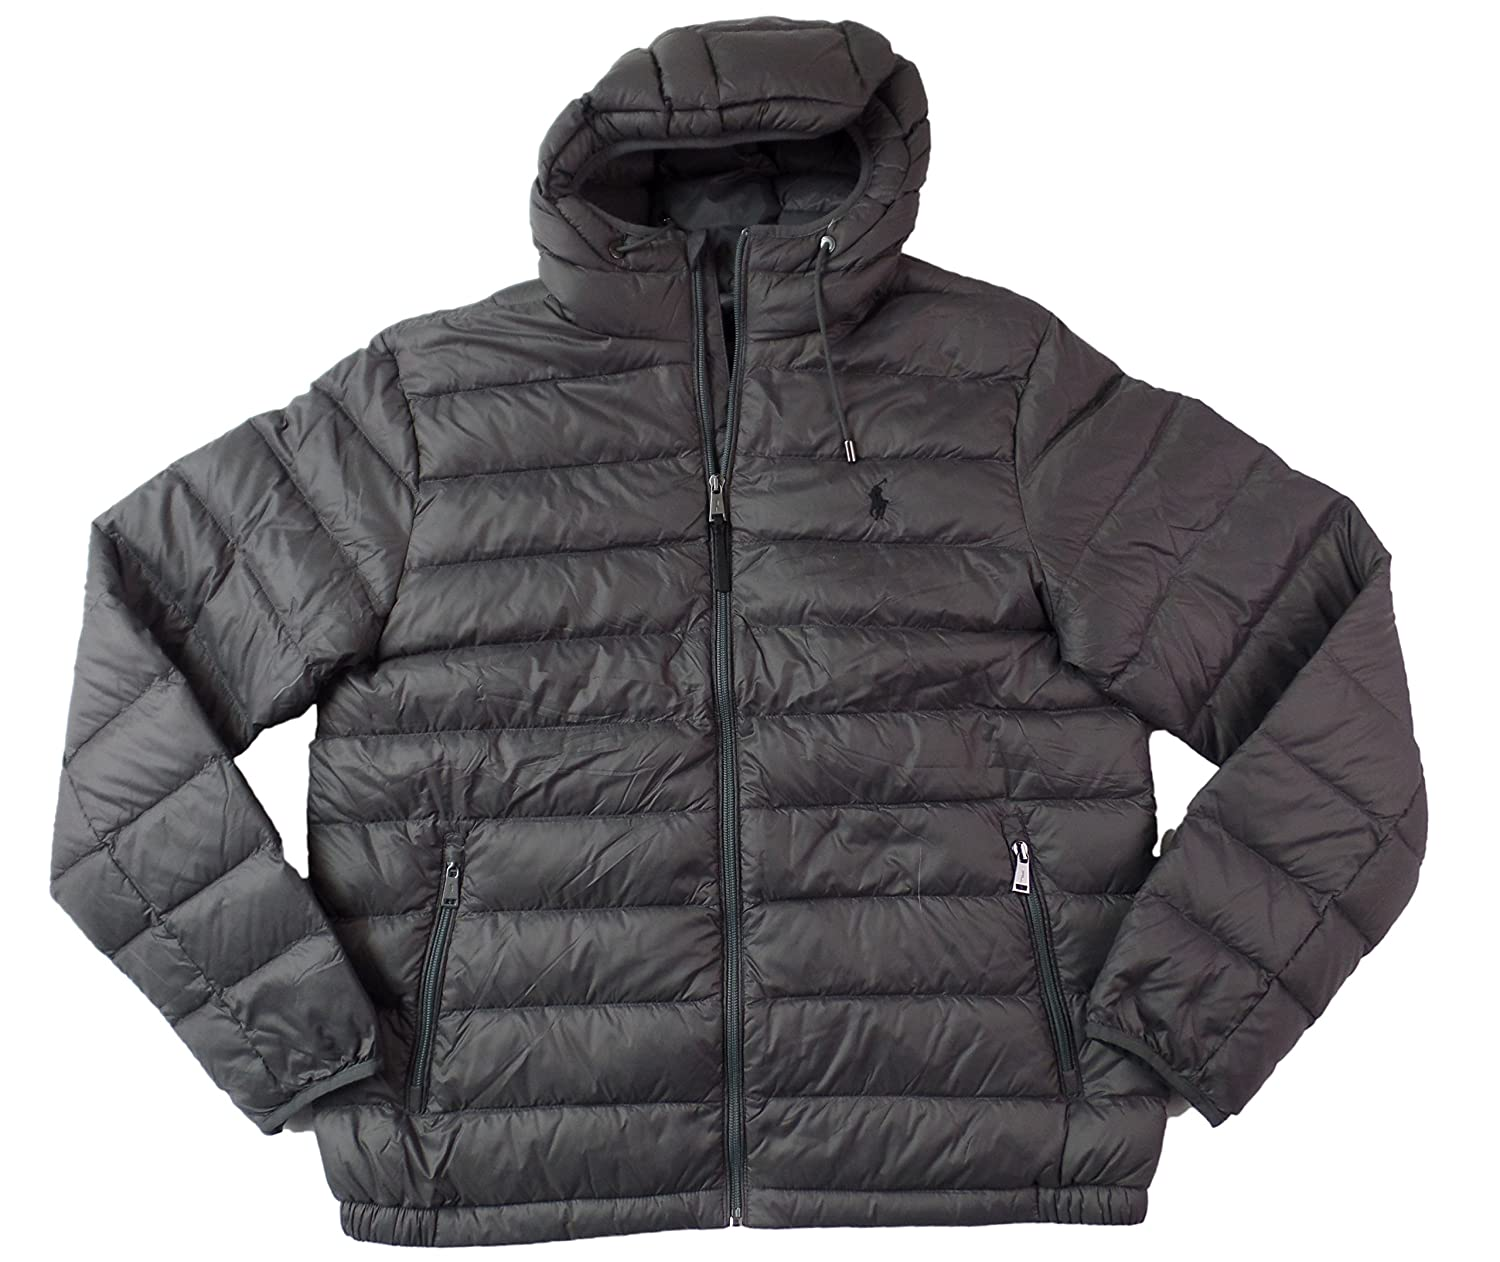 56ab1e63424 Amazon.com  Polo Ralph Lauren Mens Full Zip Hooded Puffer Jacket  Clothing